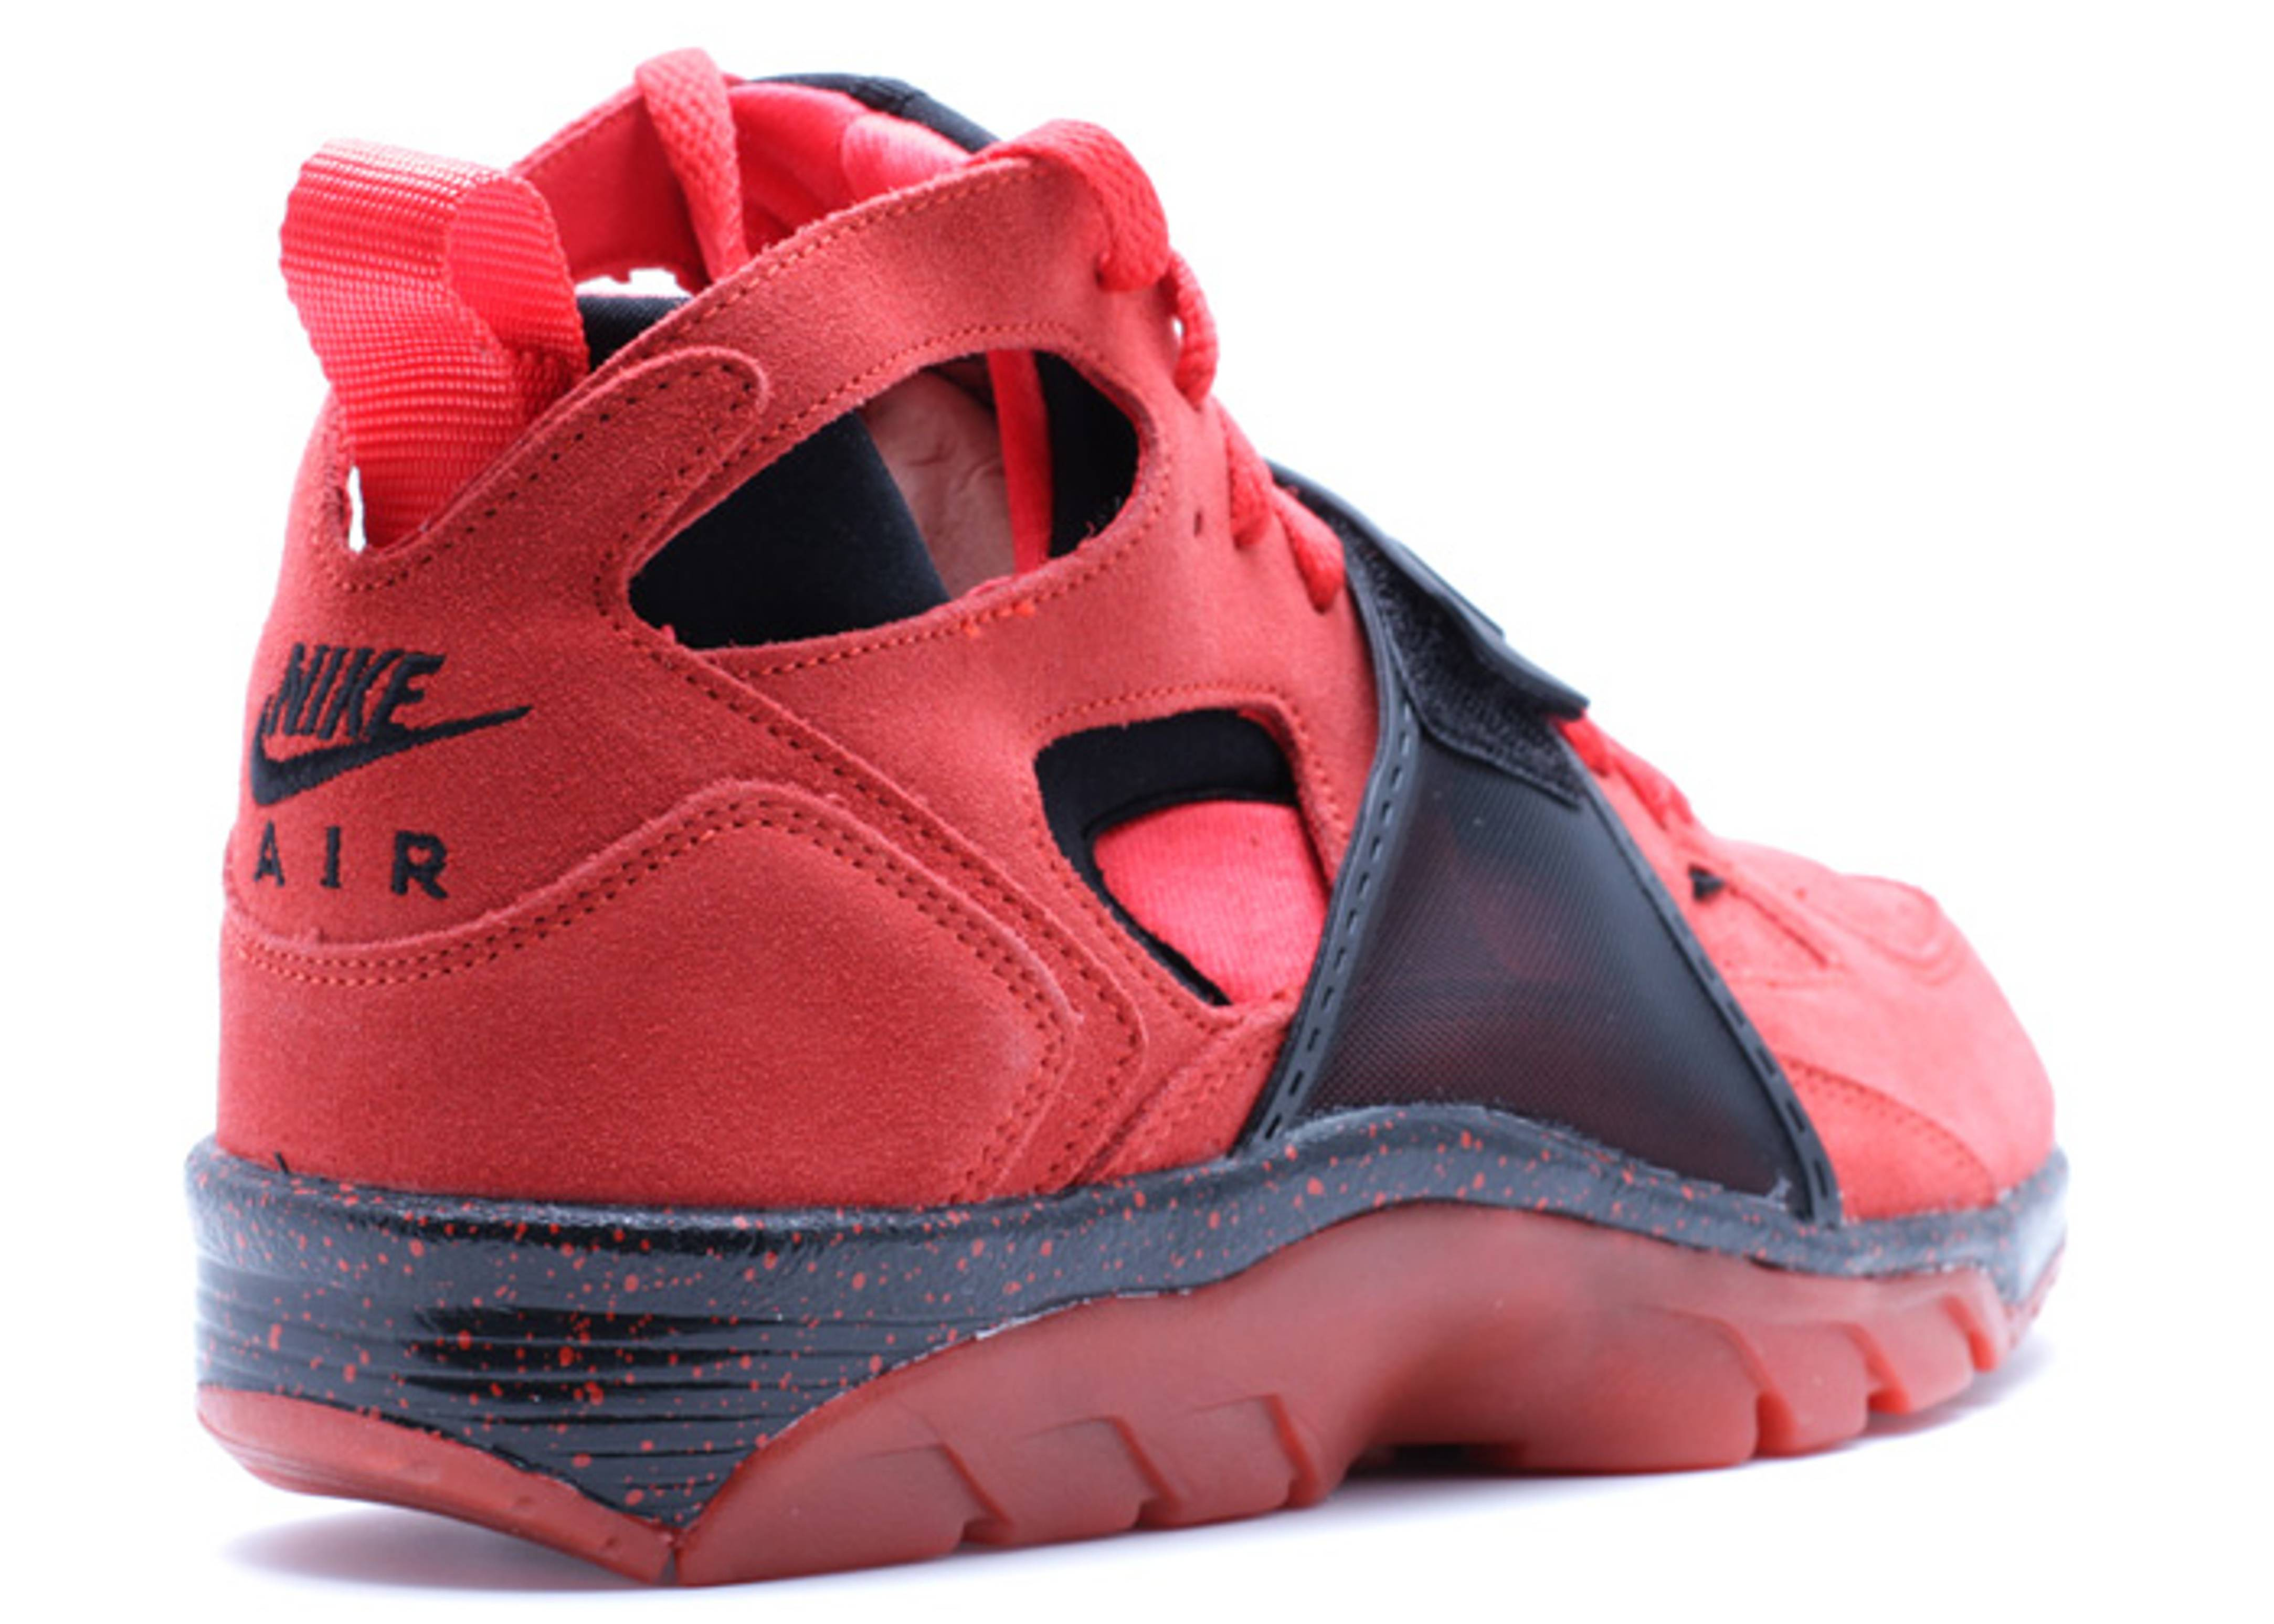 buy online 7687c ddb58 ... cheapest air trainer huarache premium love hate nike 647591 600  challenge red black flight club ea68e